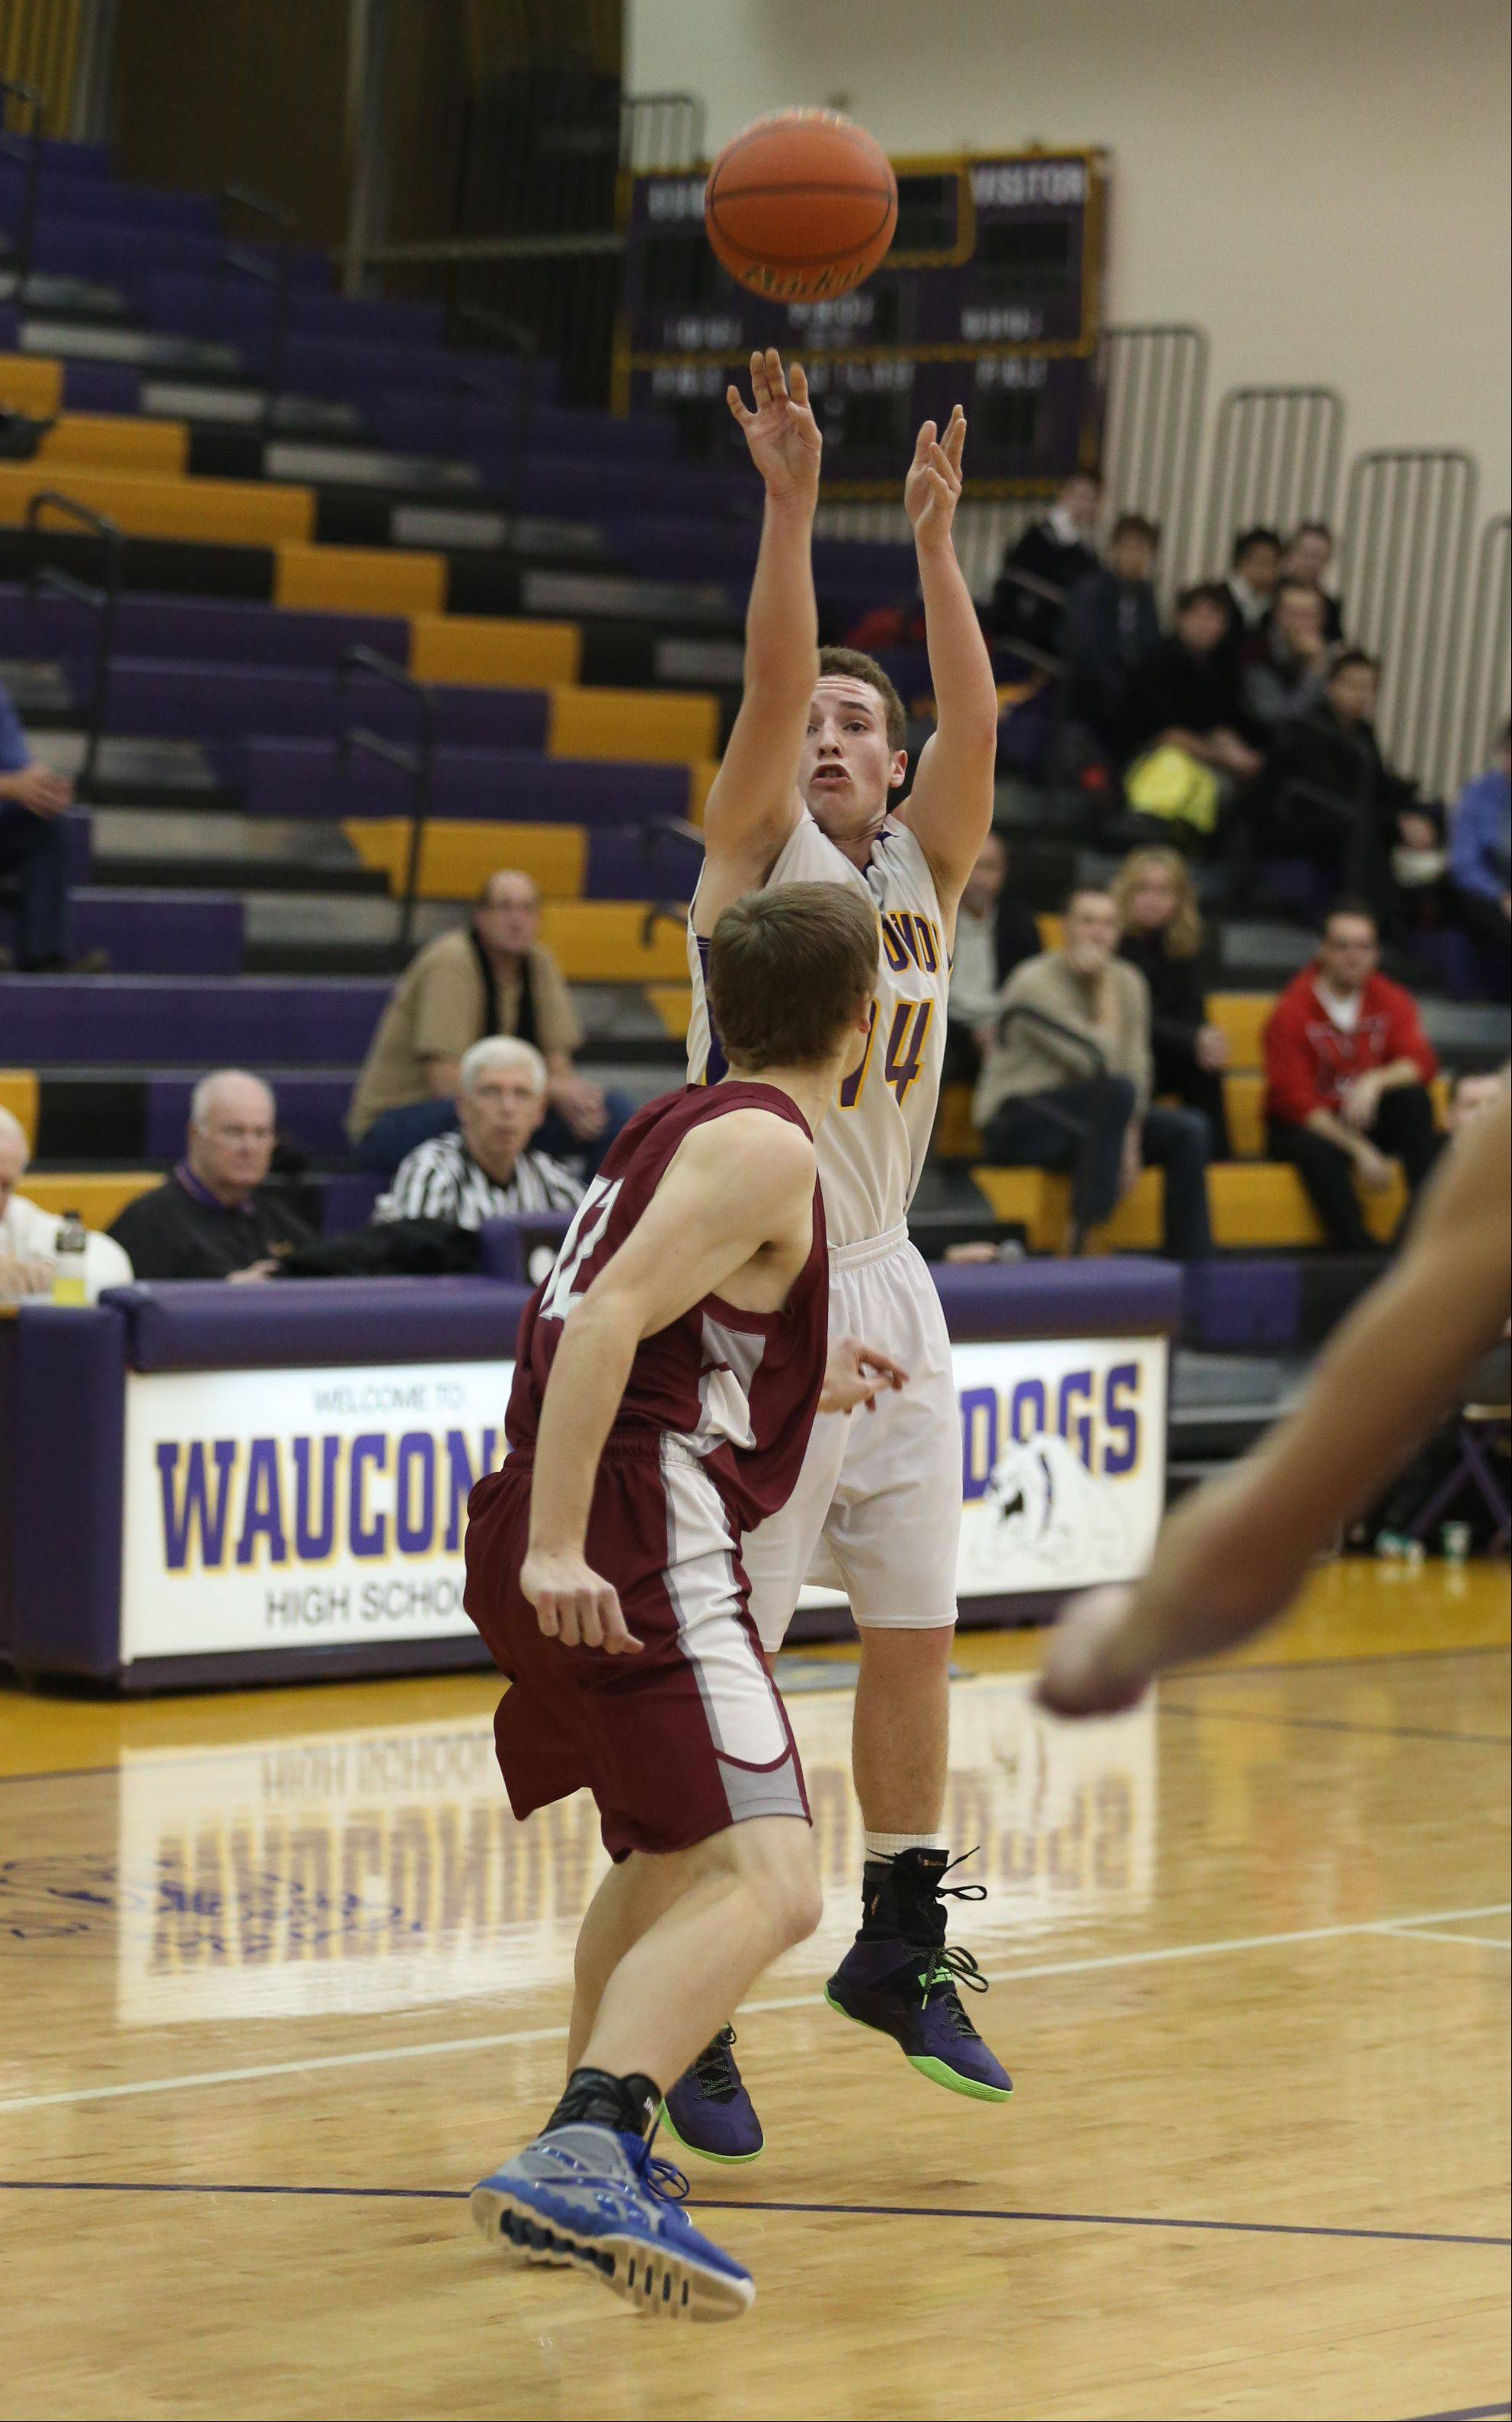 Images from the Antioch at Wauconda boys basketball game on Thursday, Dec. 12.